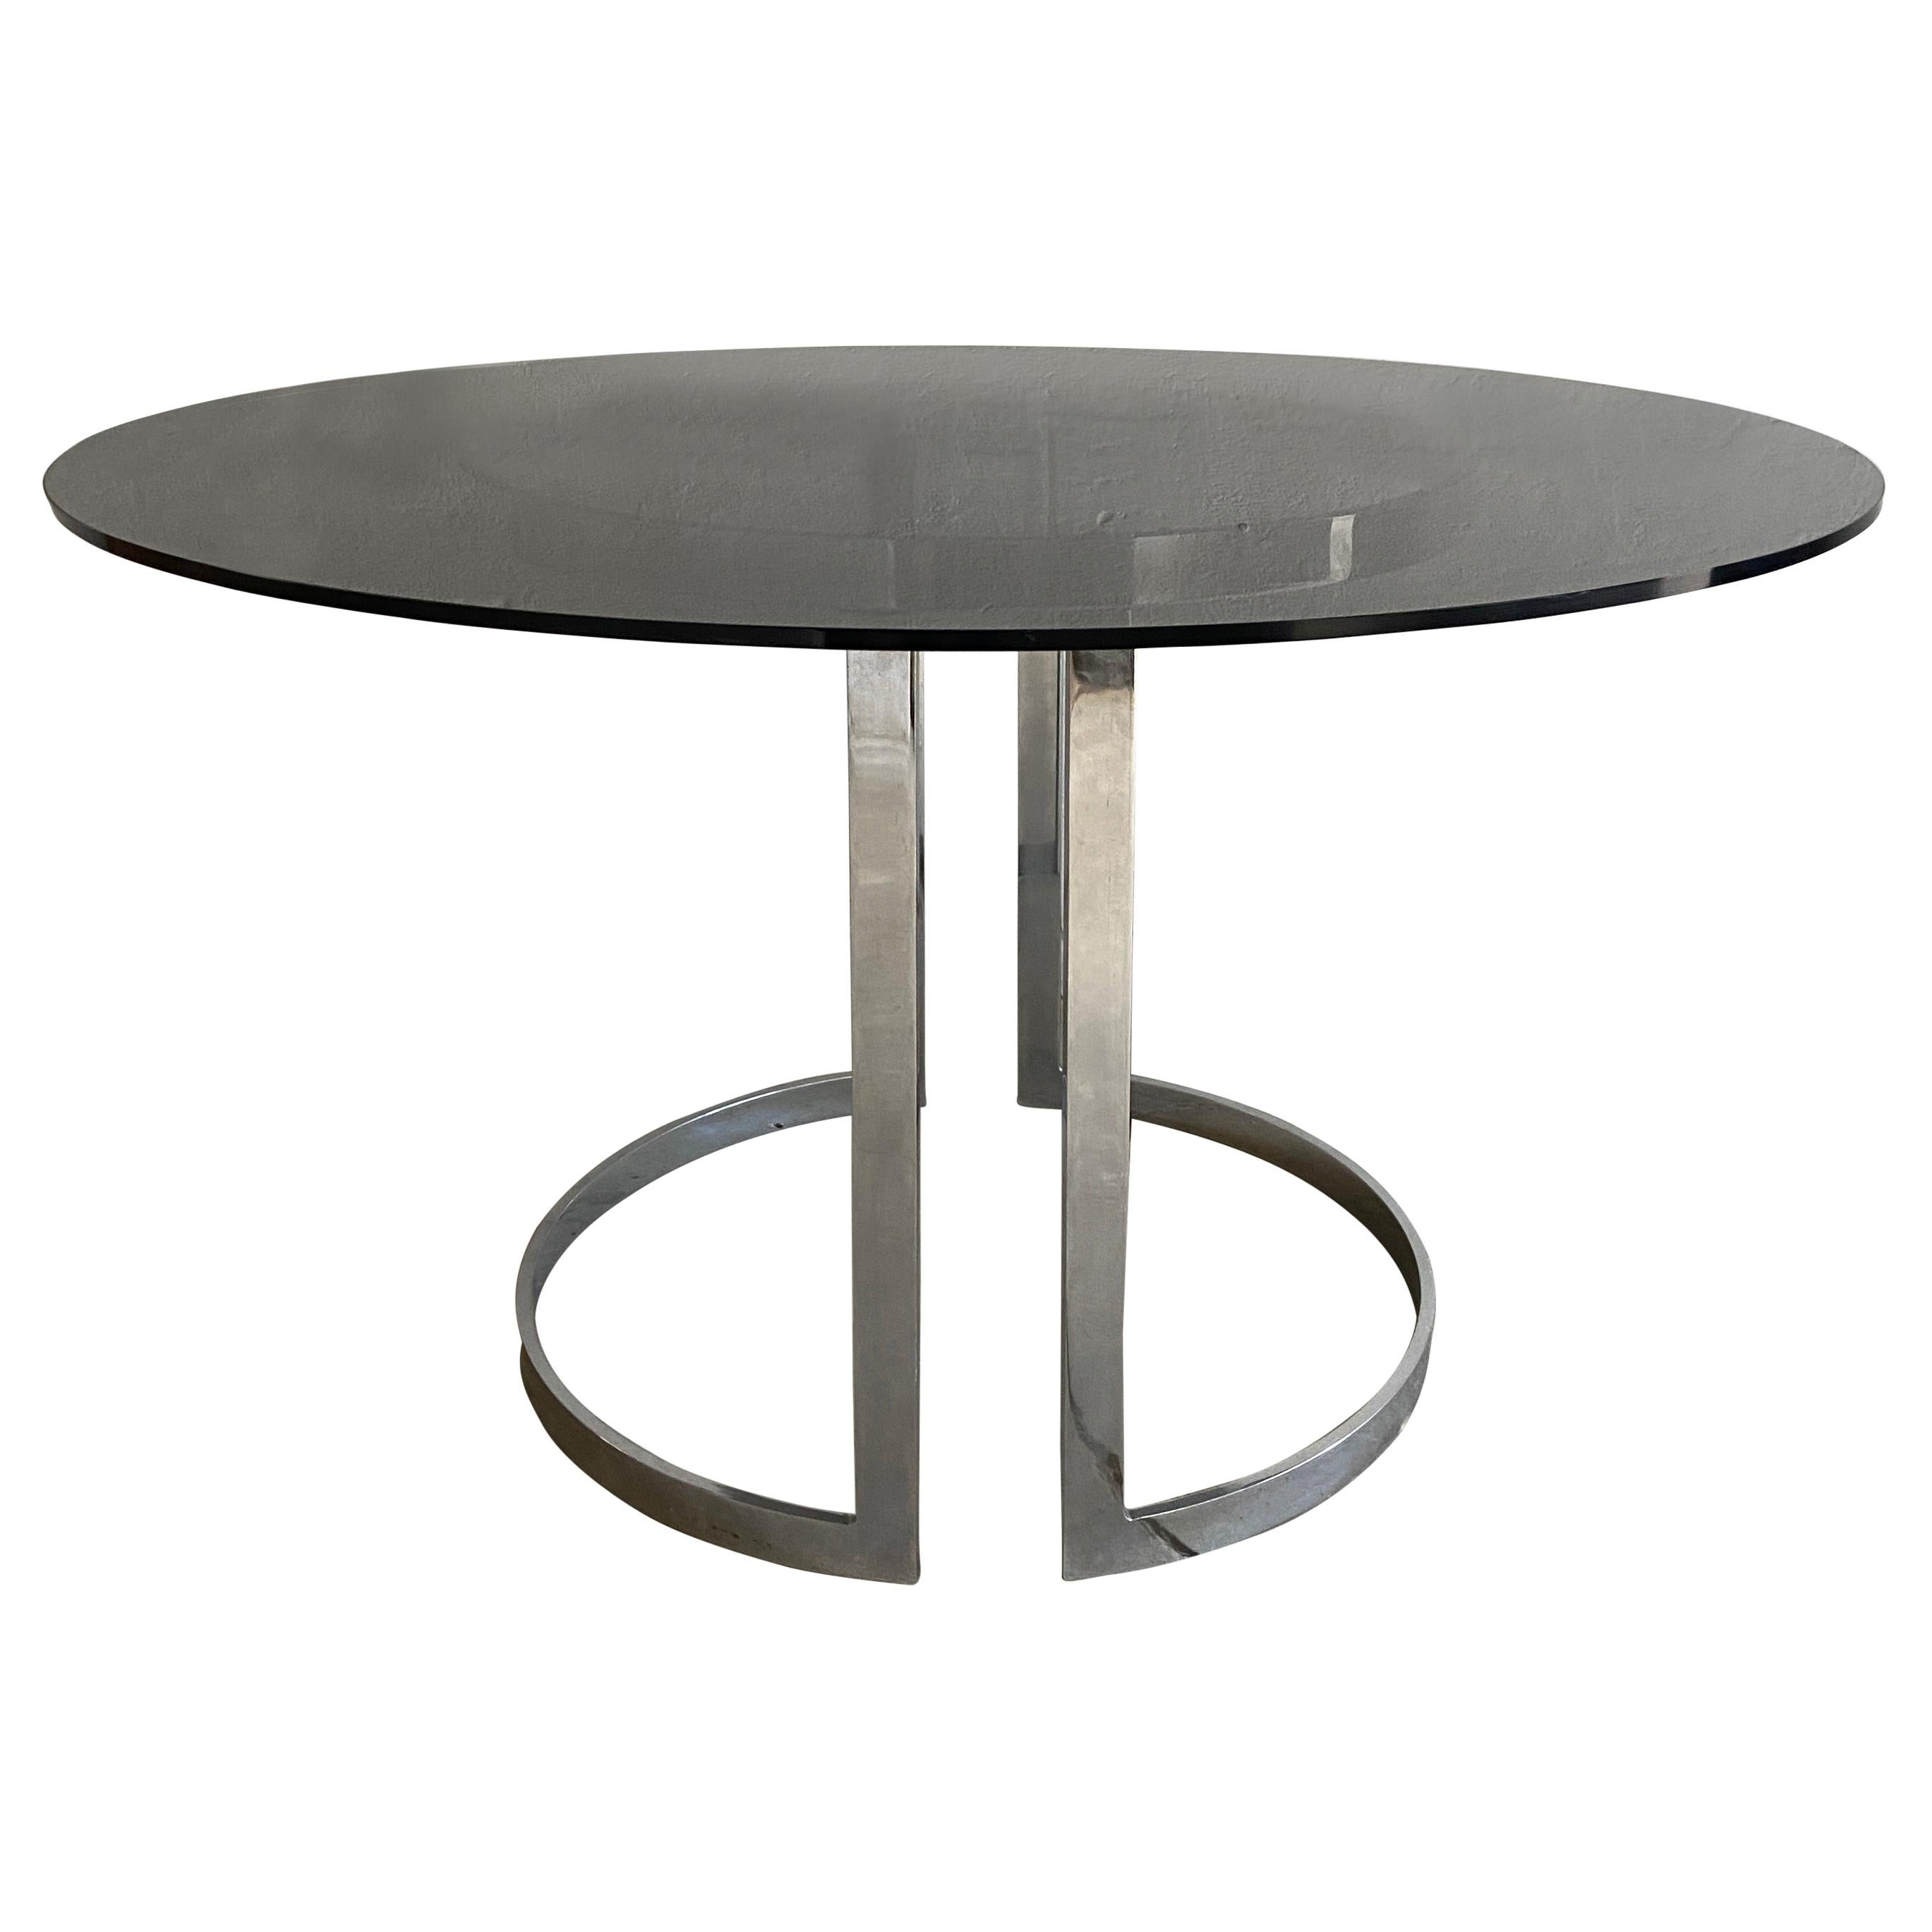 Mid-Century Modern Italian Chrome Dining Table with Smoked Glass Top, 1970s